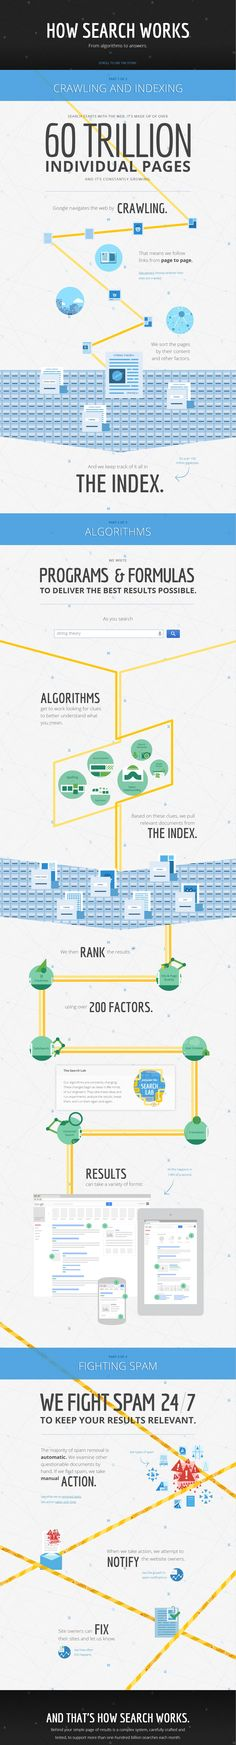 How Search Works   #Infographic #Search